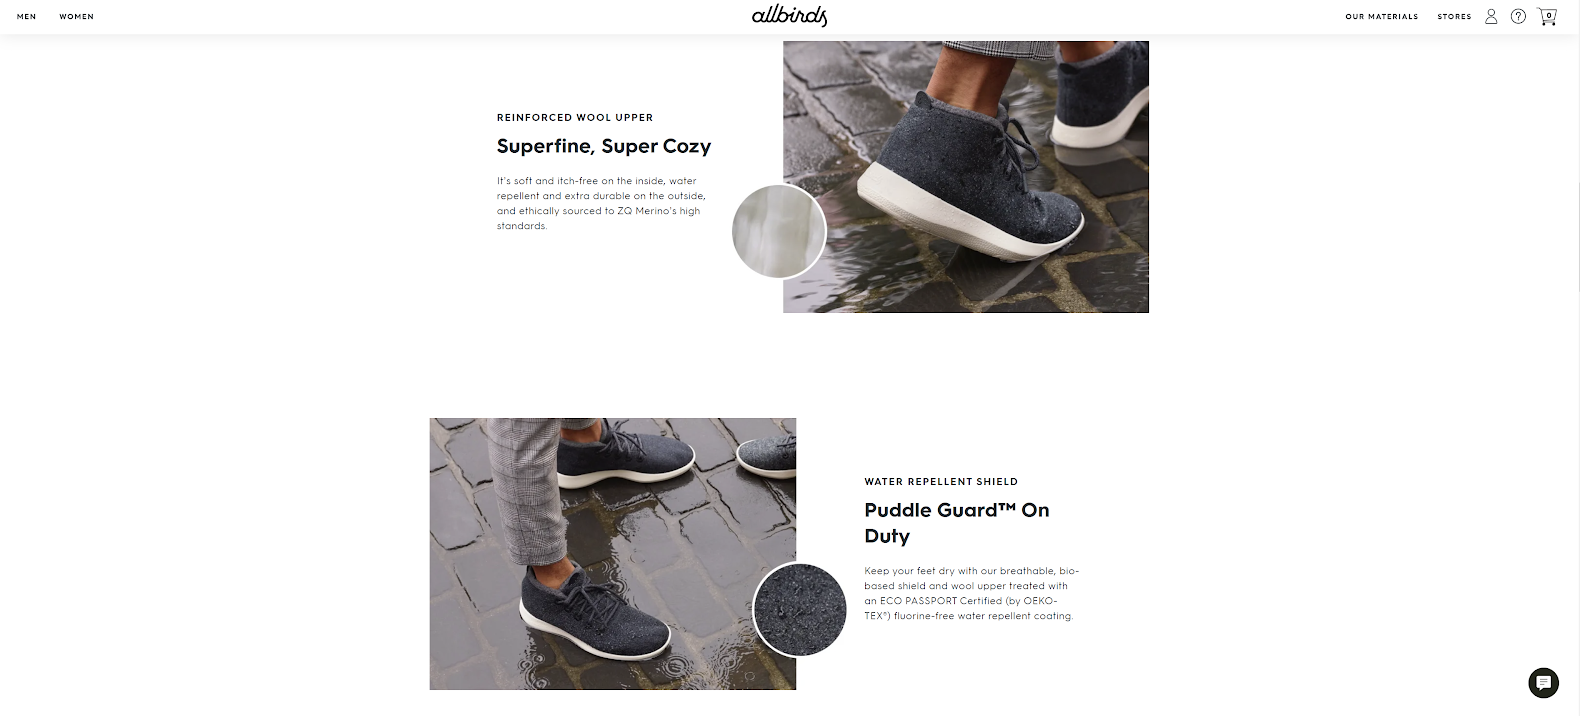 Vivid expanation for a high converting product page